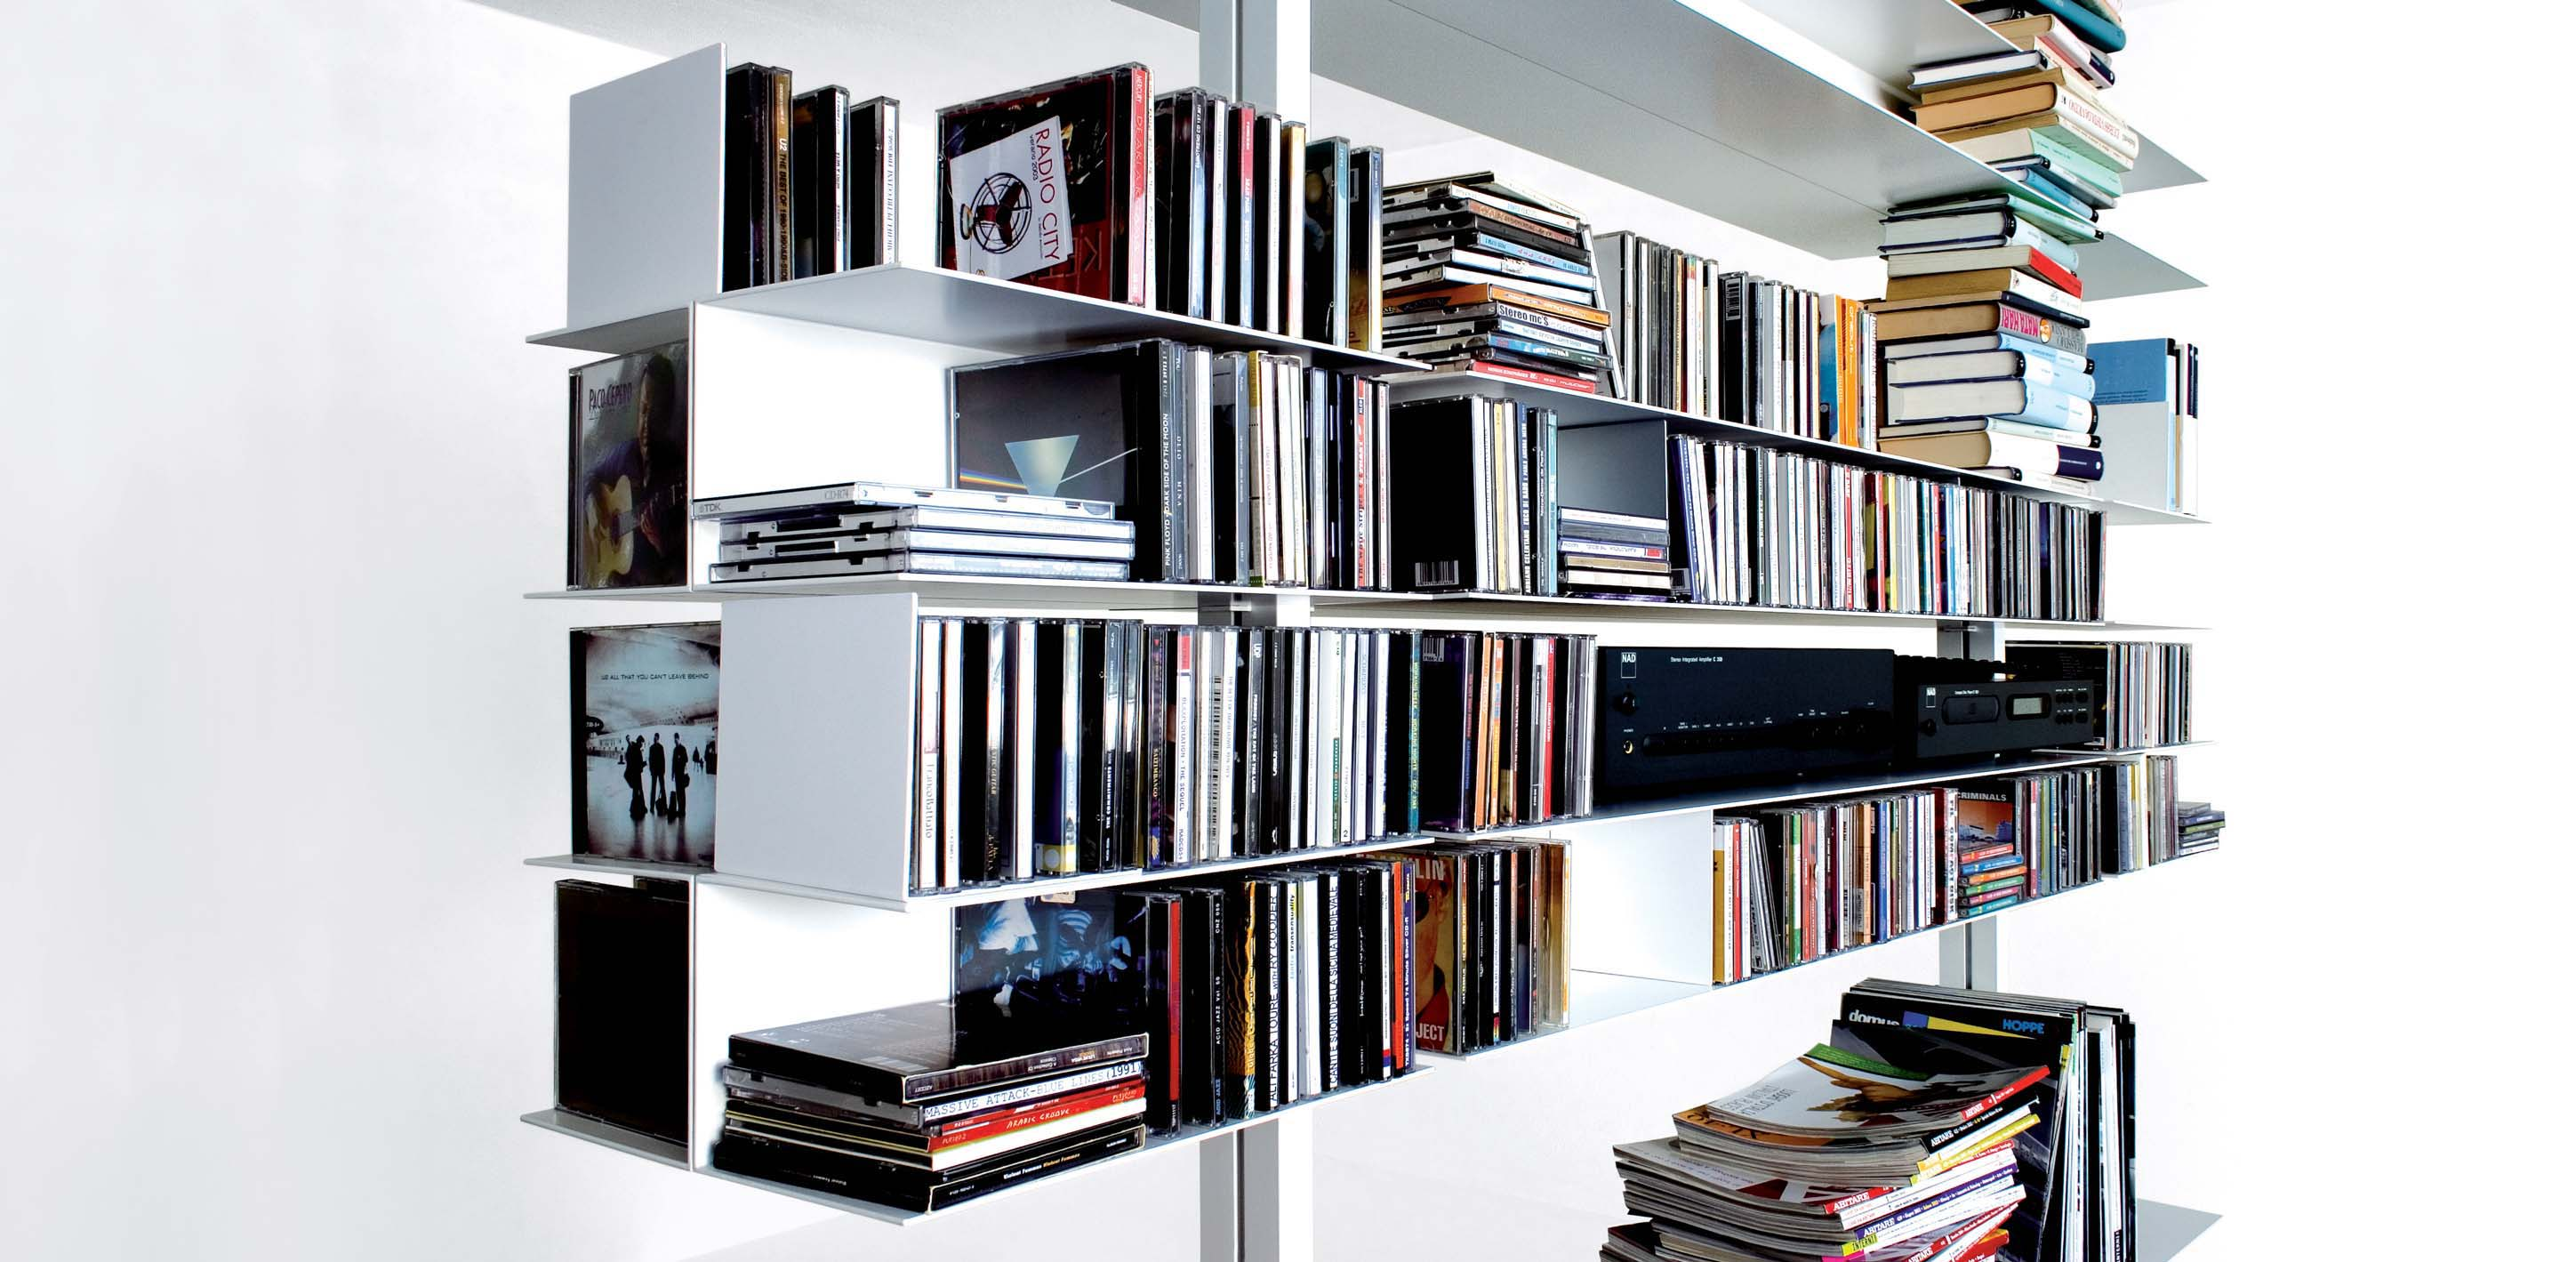 extendo extendable profiles with white aluminium C12 finish + double extruded aluminium shelves for symmetrical composition on both sides, CD racks and bookends, all elements with white aluminium C12